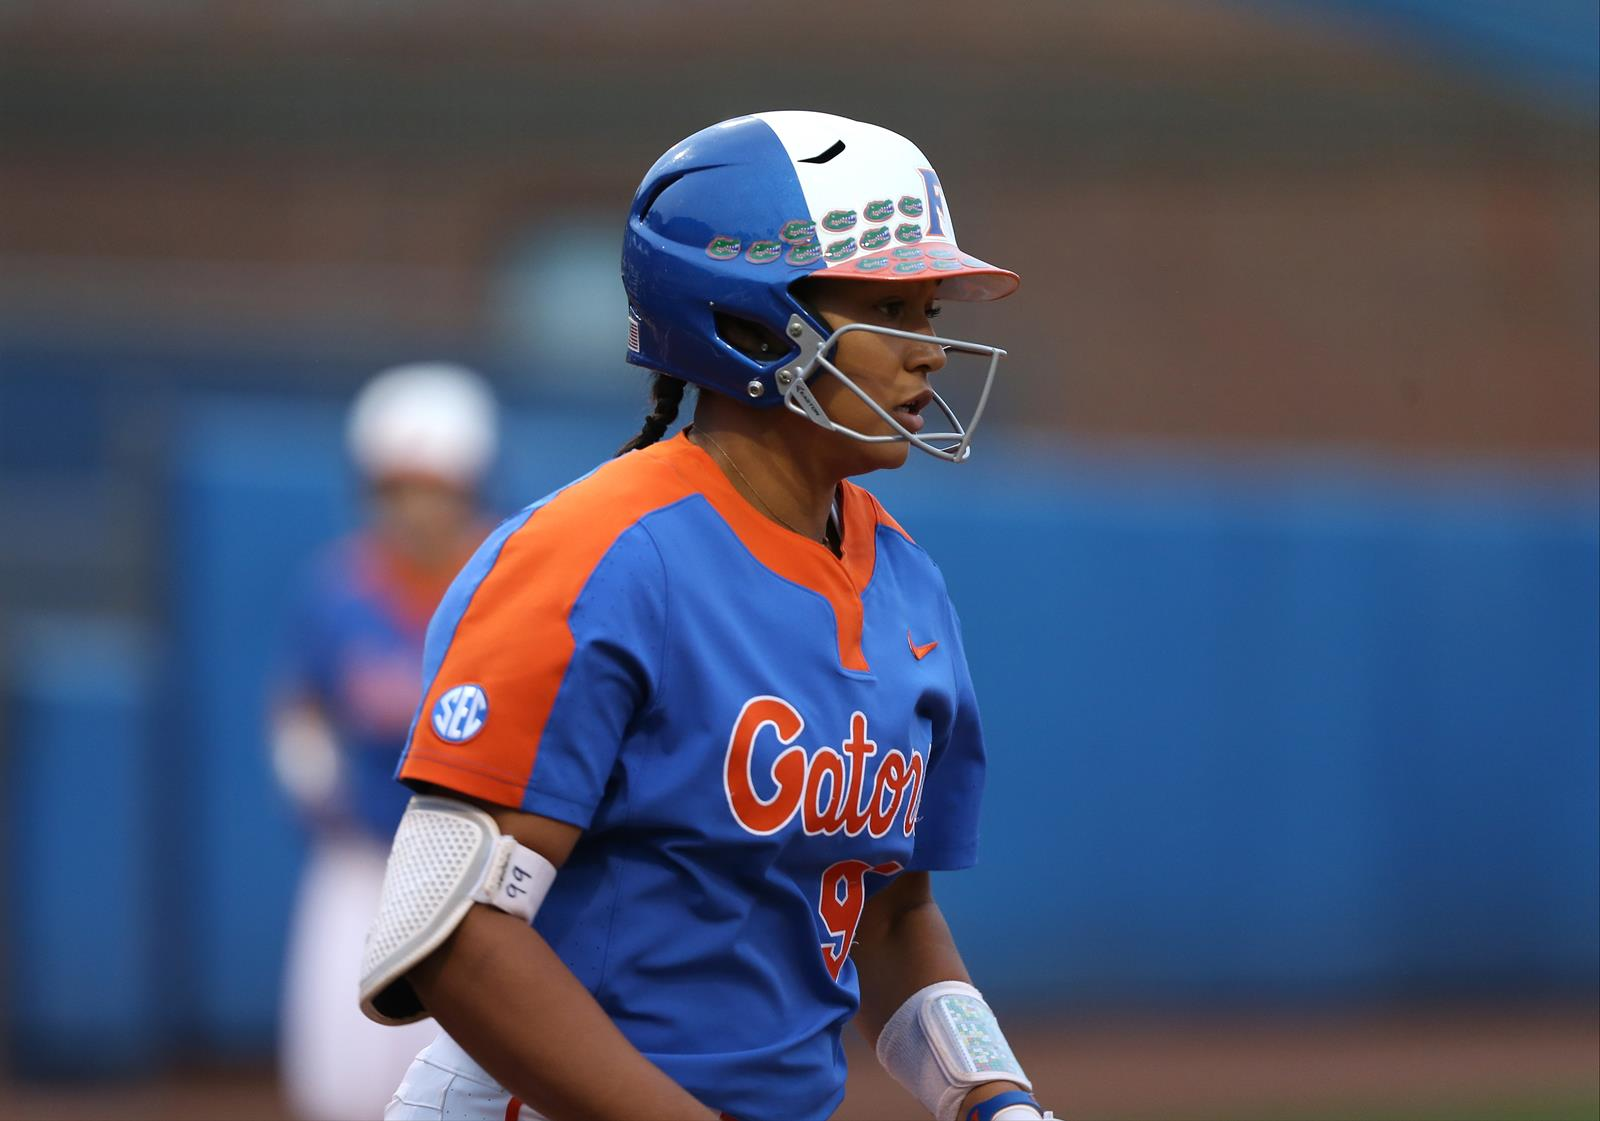 big sale d1459 a7c32 Jordan Matthews - Softball - Florida Gators